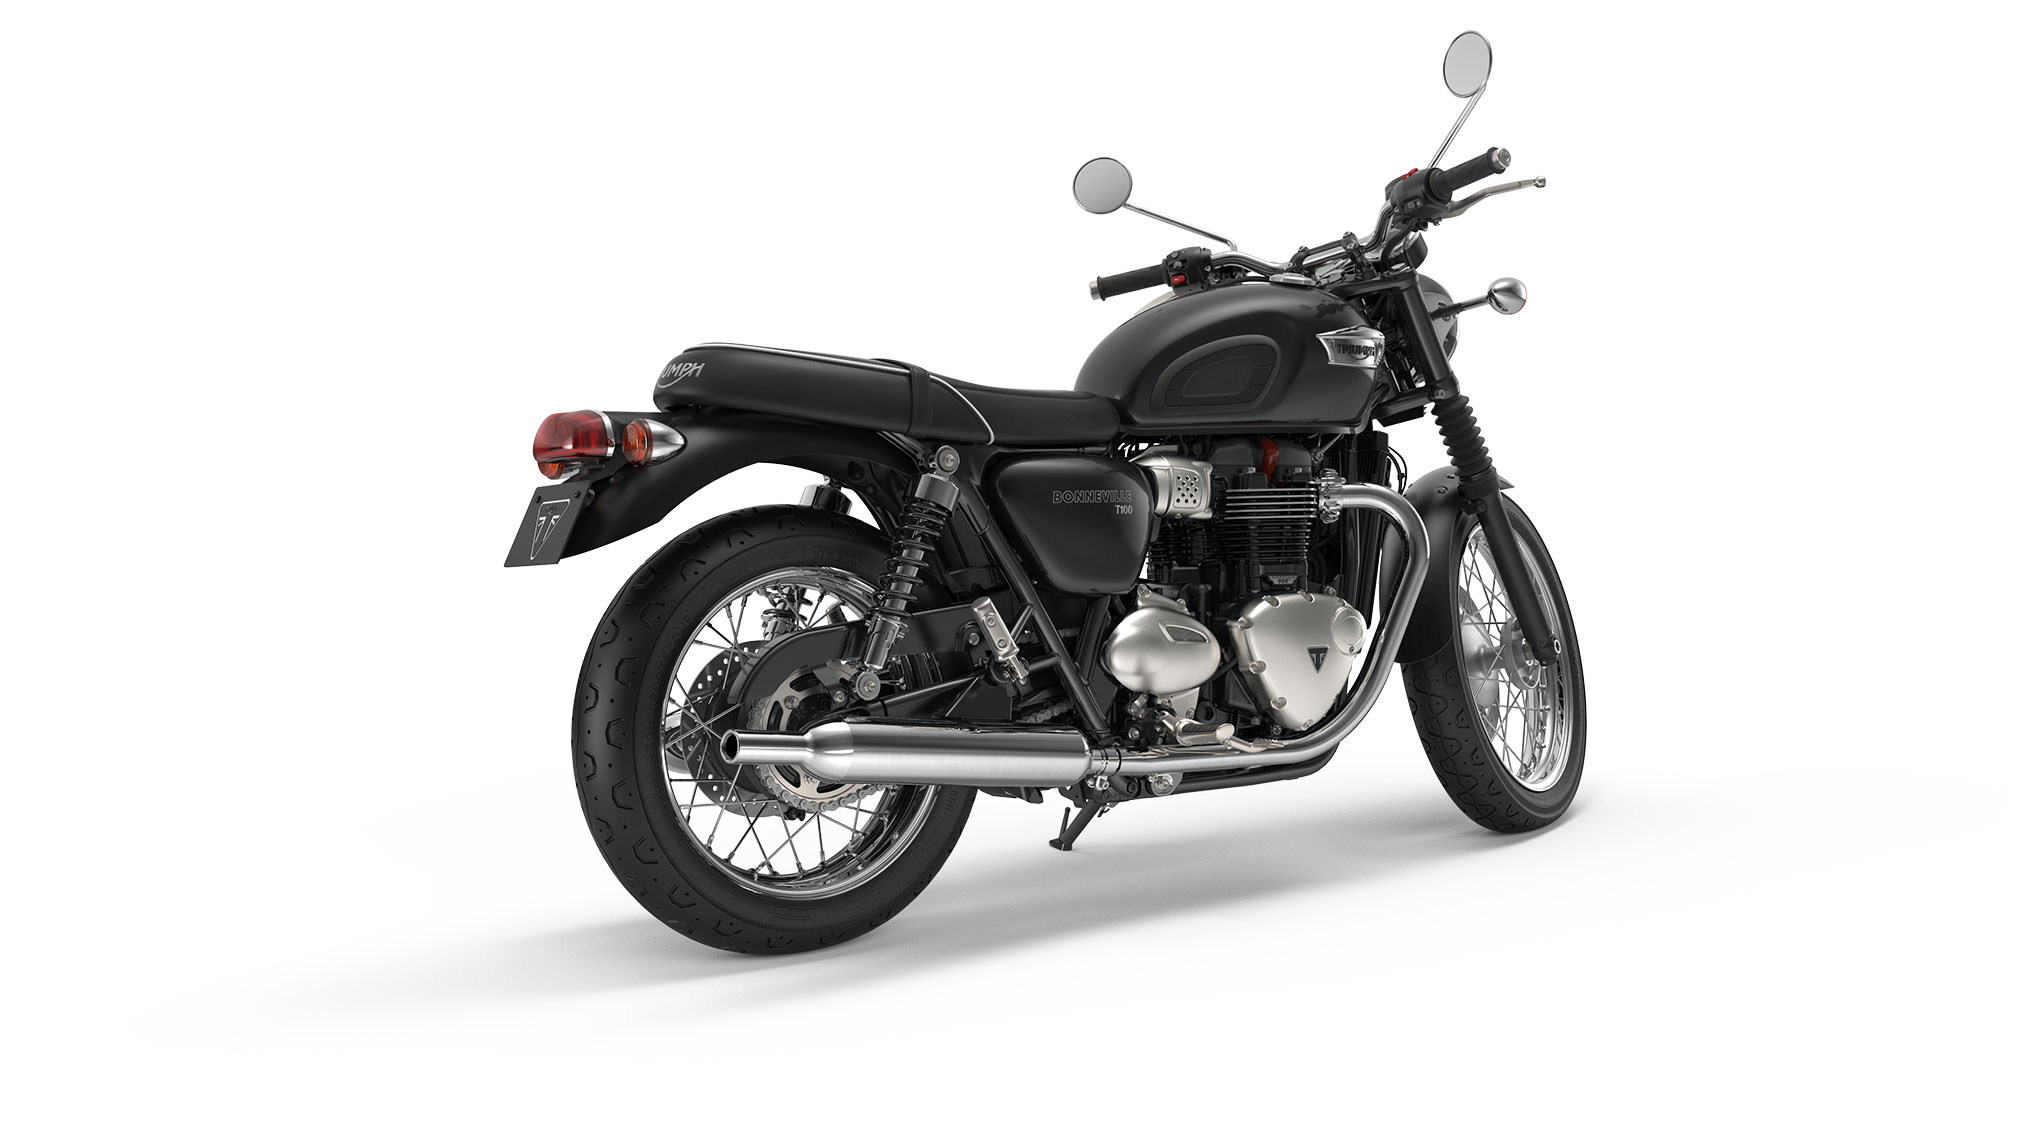 2017 triumph bonneville t100 review. Black Bedroom Furniture Sets. Home Design Ideas